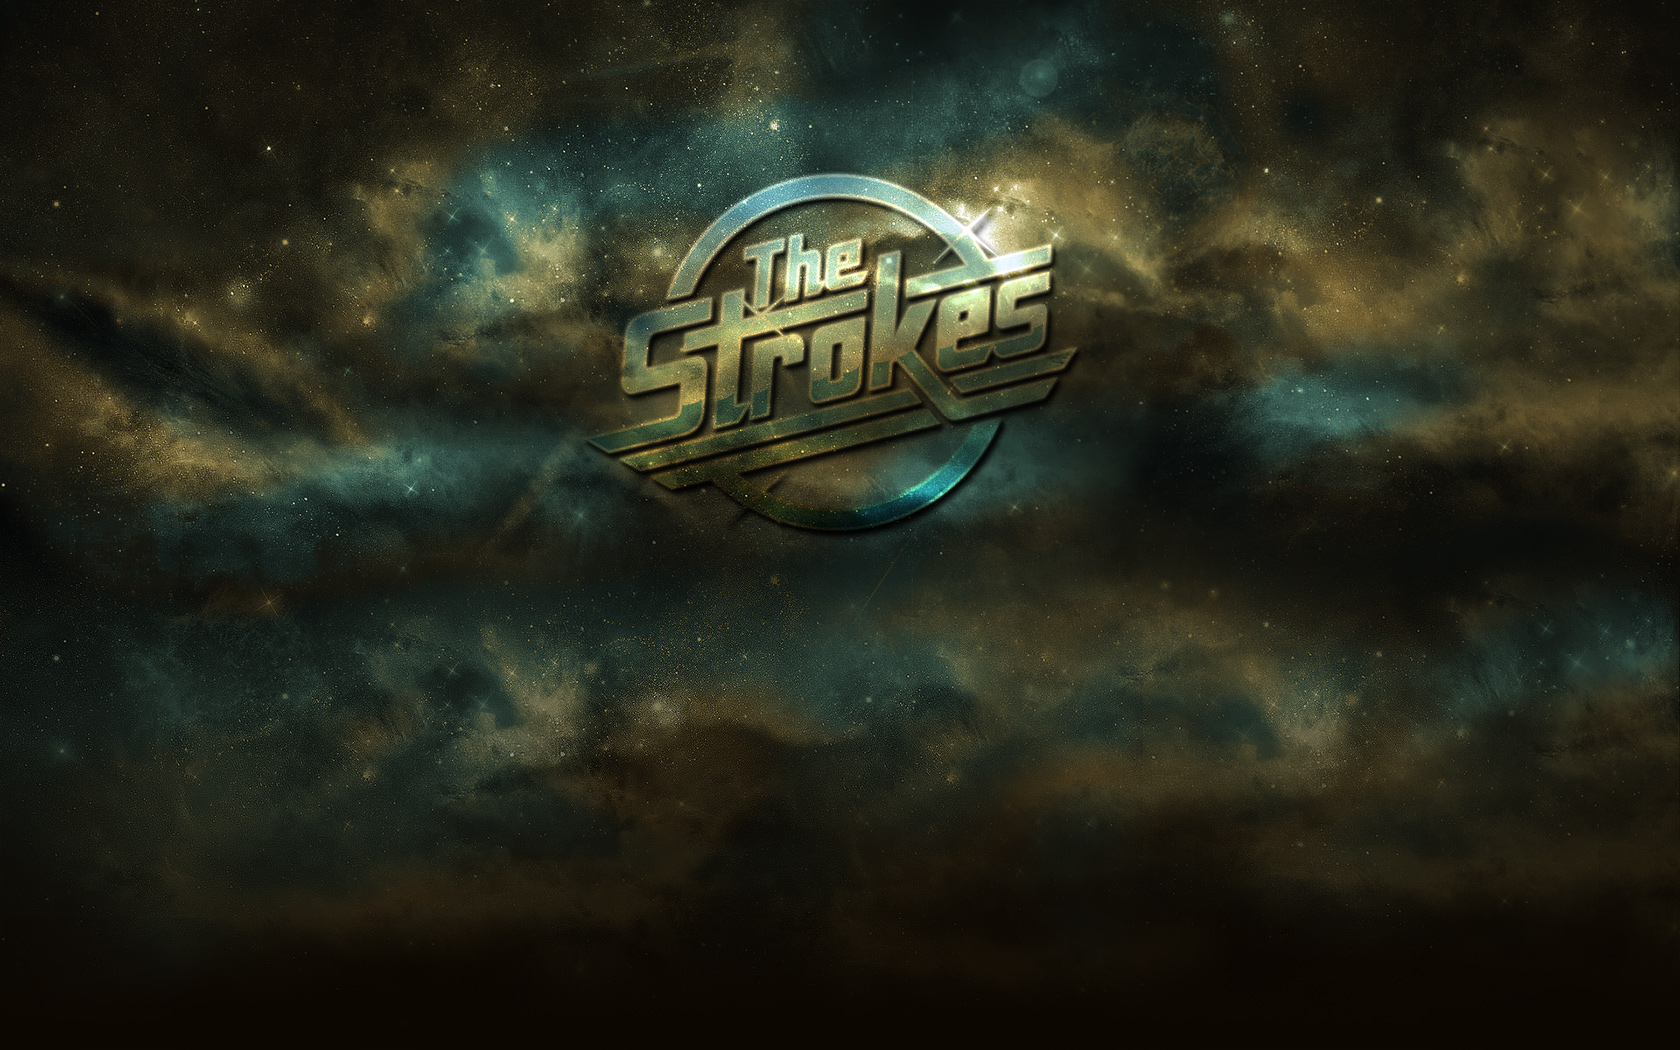 Wallpaper the strokes fans espero altavistaventures Images